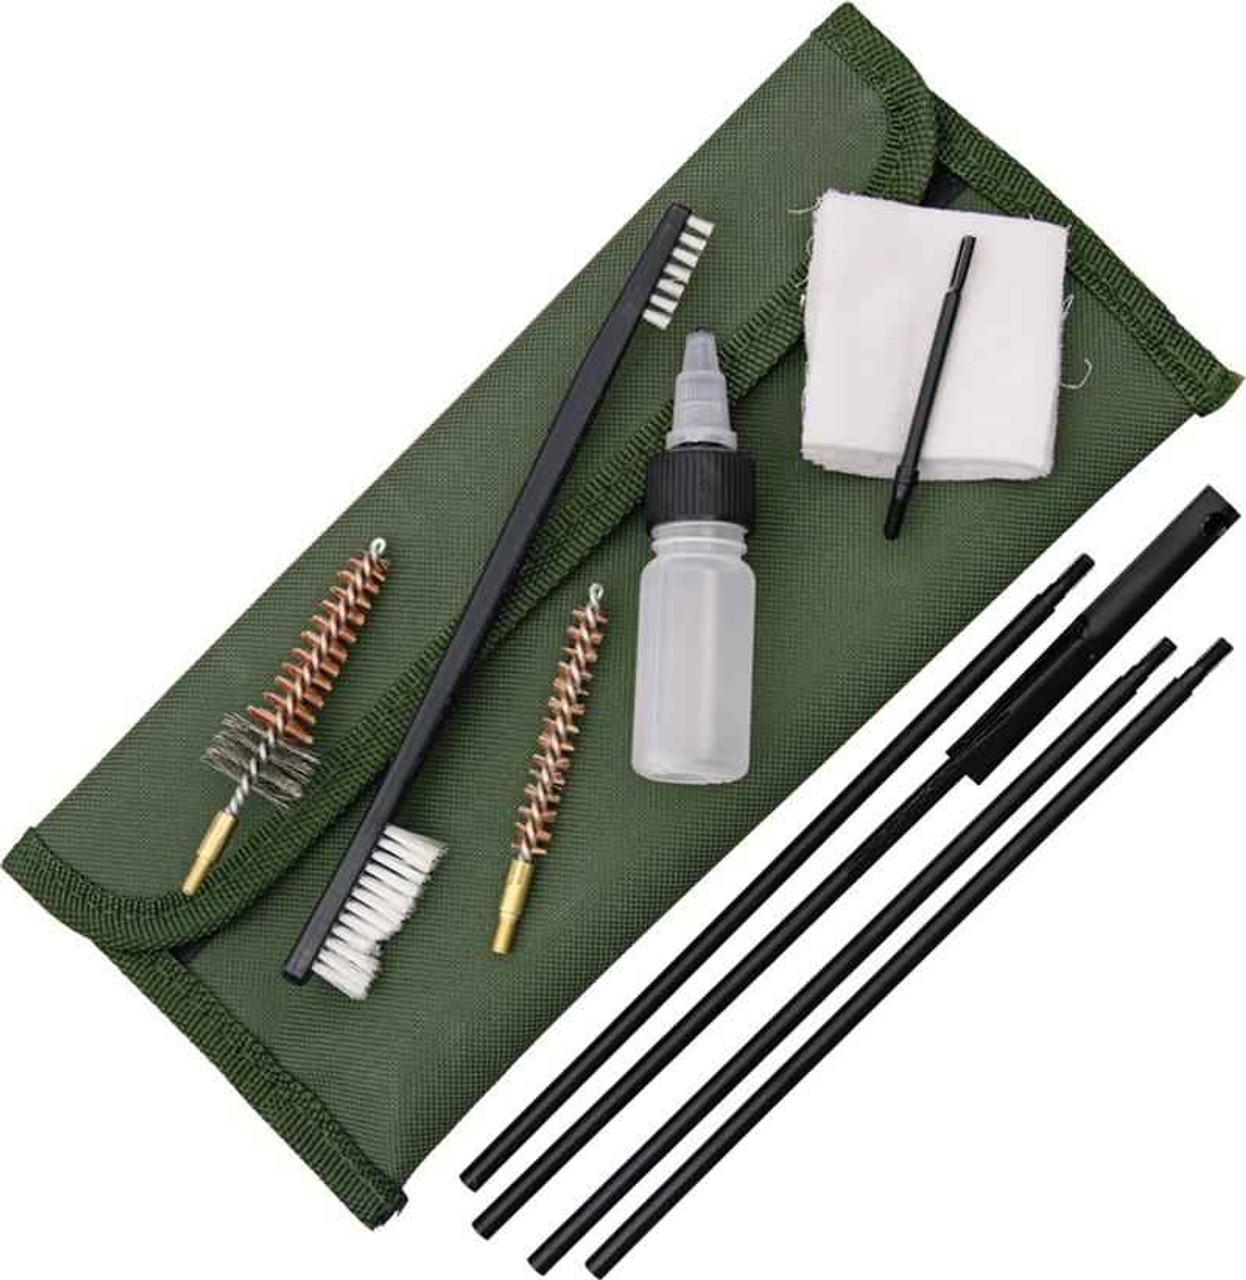 ABKT AB0036 Tac 7.62mm Gun Cleaning Kit, Olive Green Pouch.